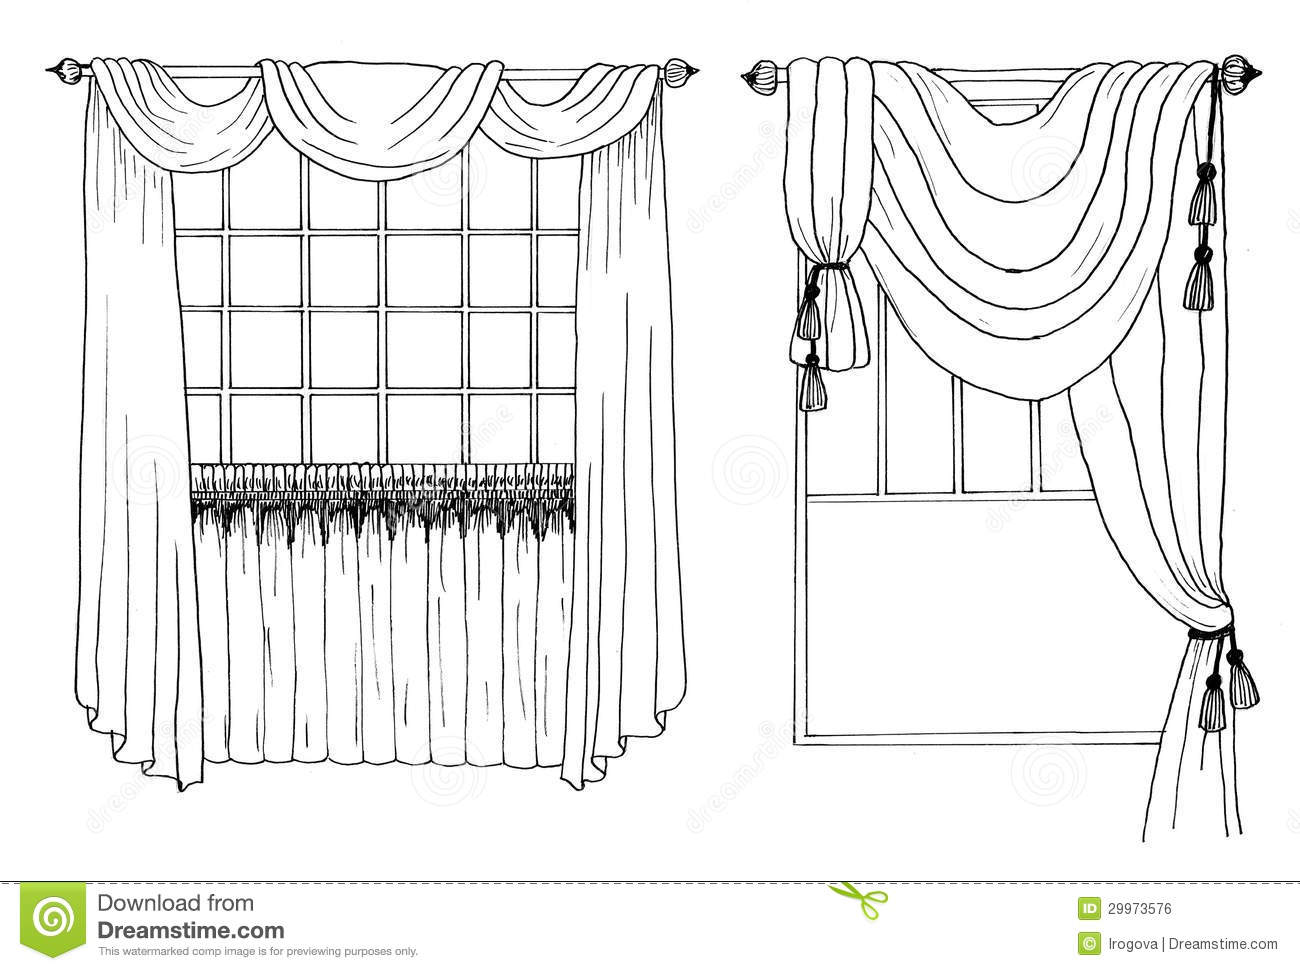 Vintage Vector Frame Border Divider Corner Vector 12124900 in addition Royalty Free Stock Image Graphic Sketch Drapery Curtain White Image29973576 in addition Condo Floor Plans furthermore Floor Framing Details together with Elegant Designs. on luxury home design plans